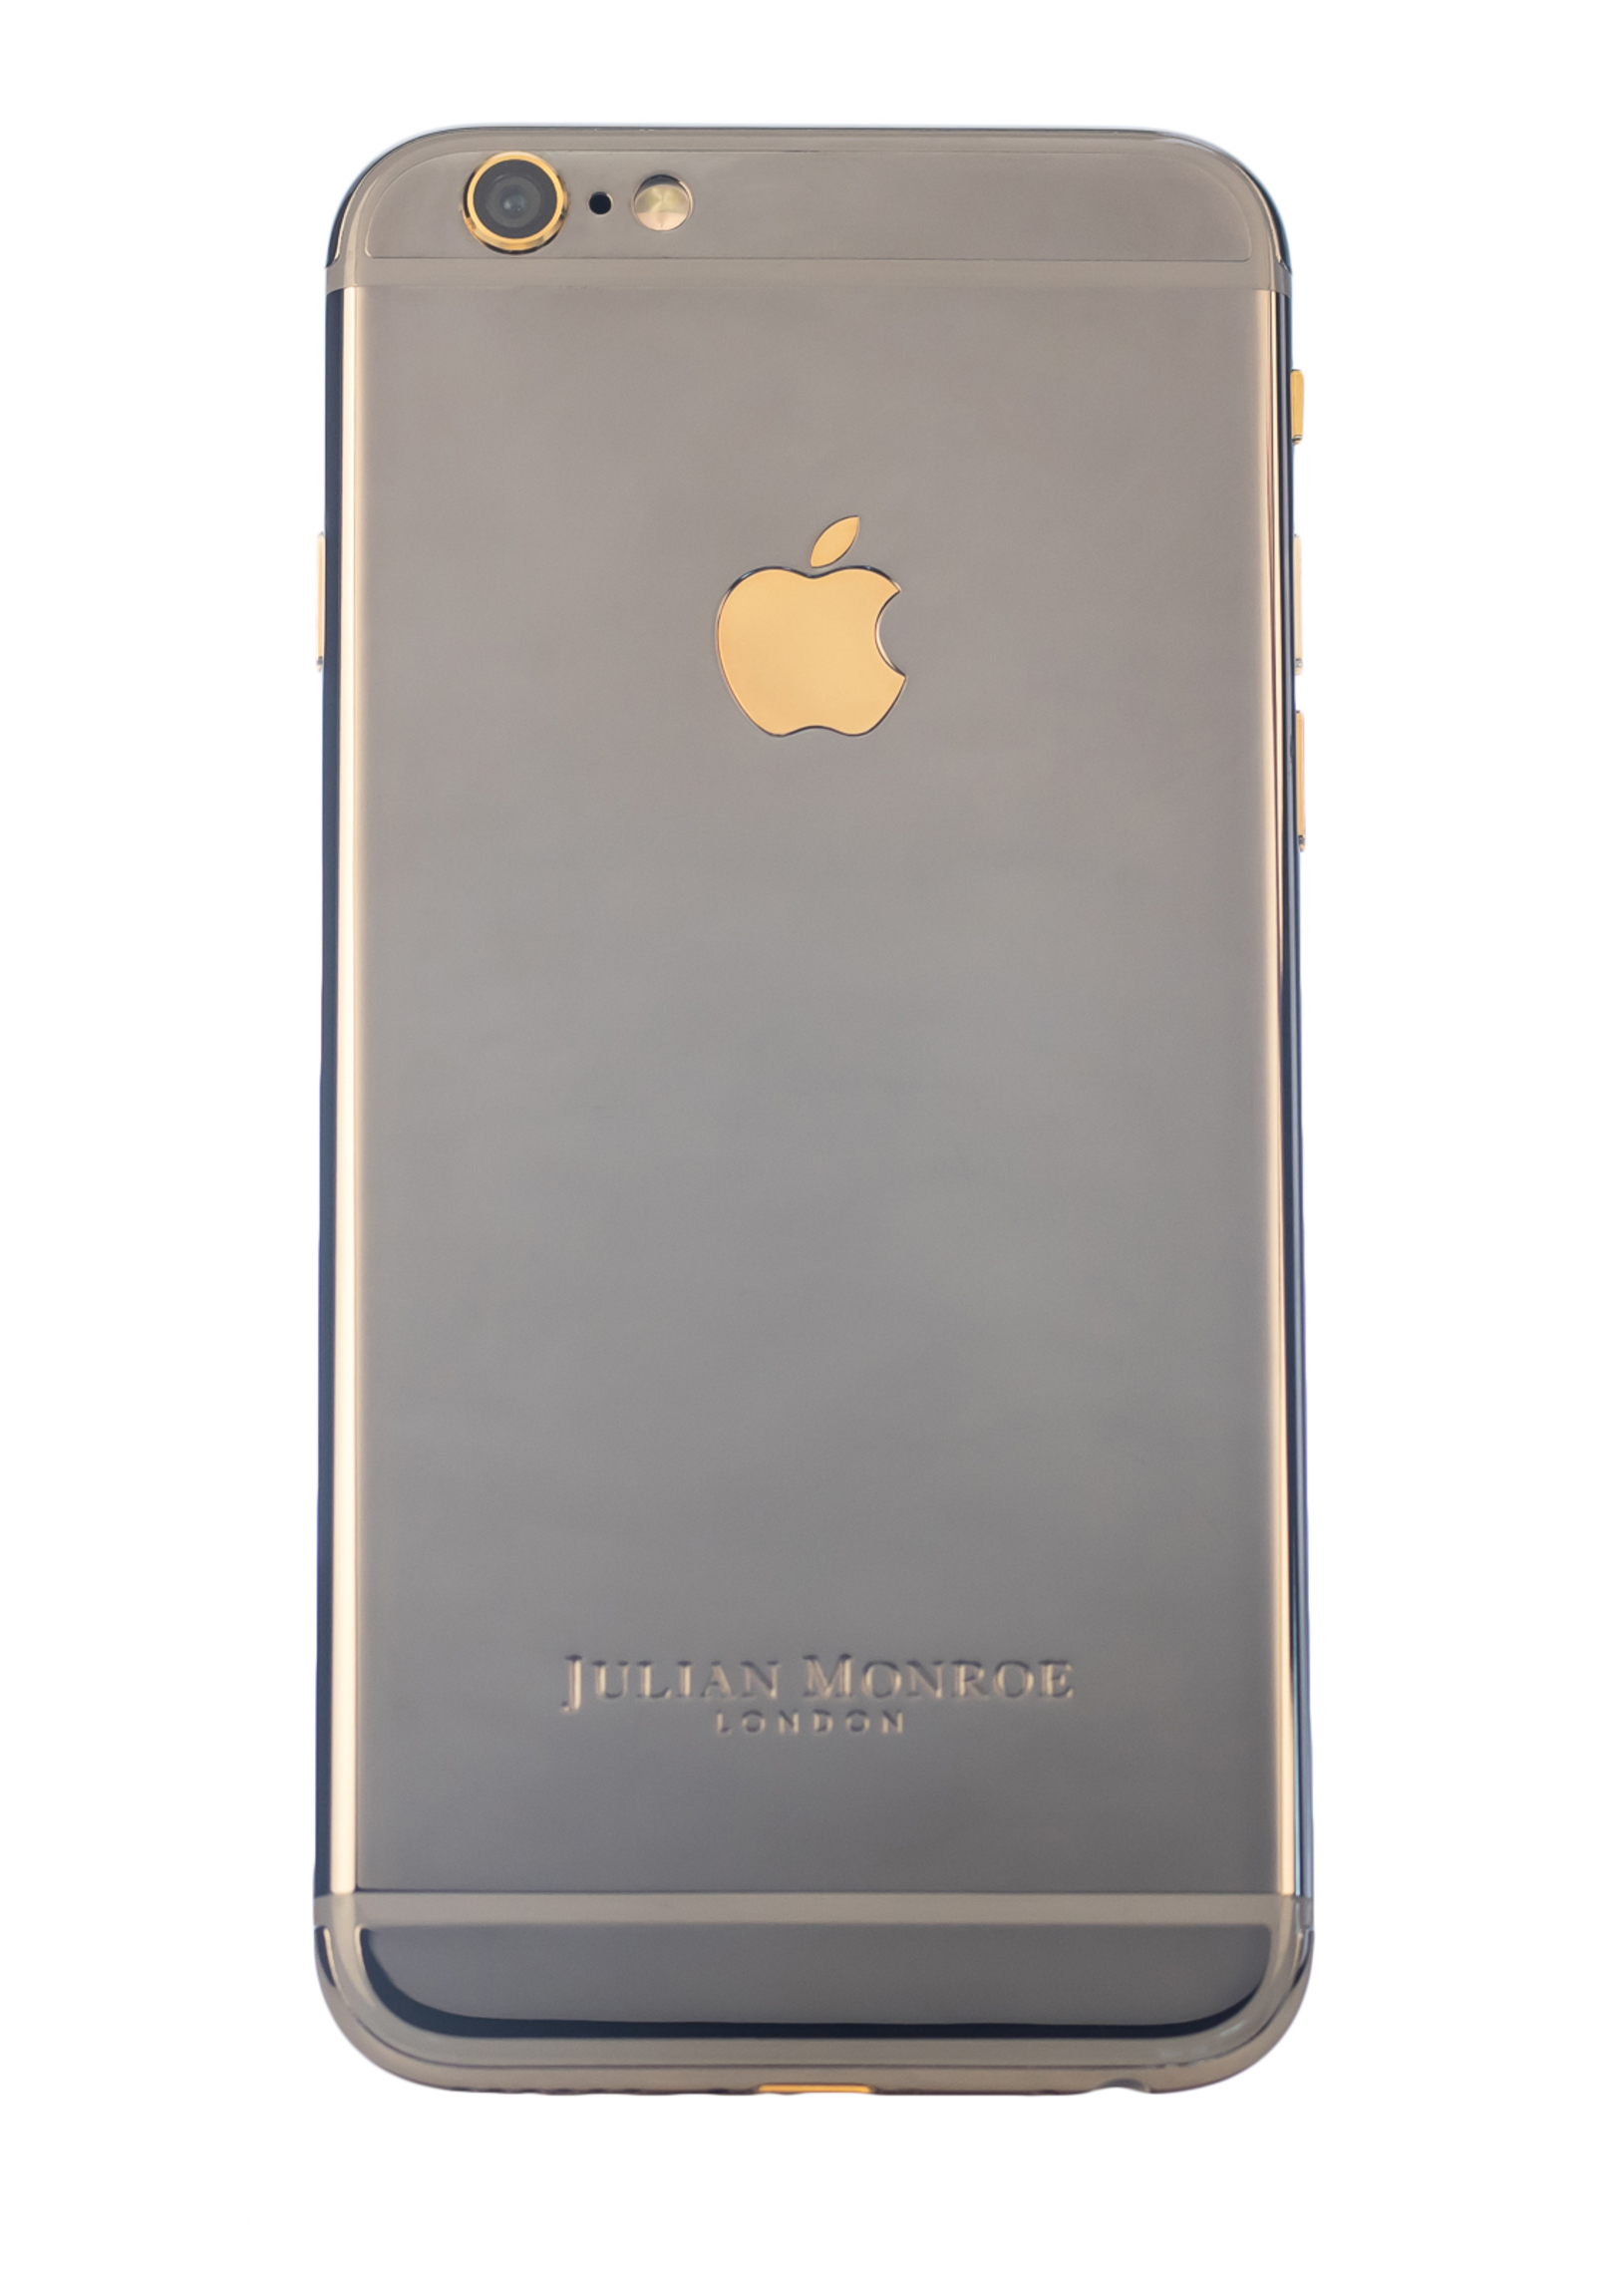 950 Black Platinum iPhone 6s Plus (By Julian Monroe London)